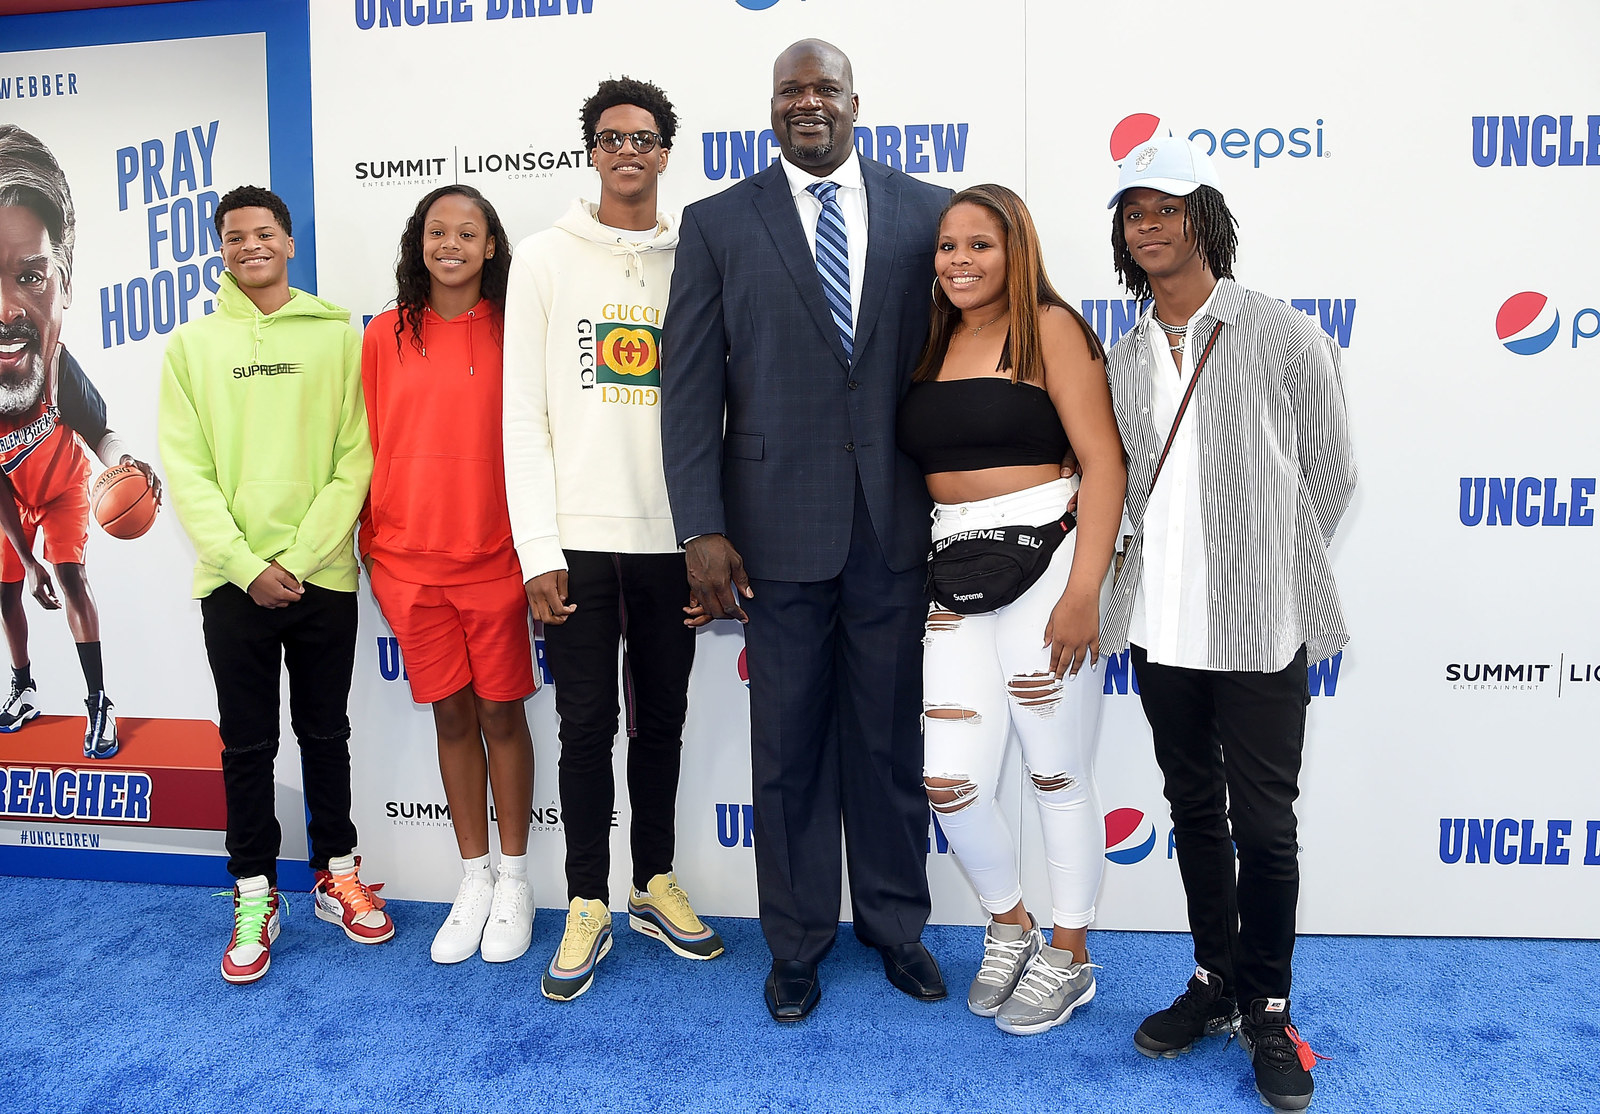 Shaq: 5 kids -  Cute family.